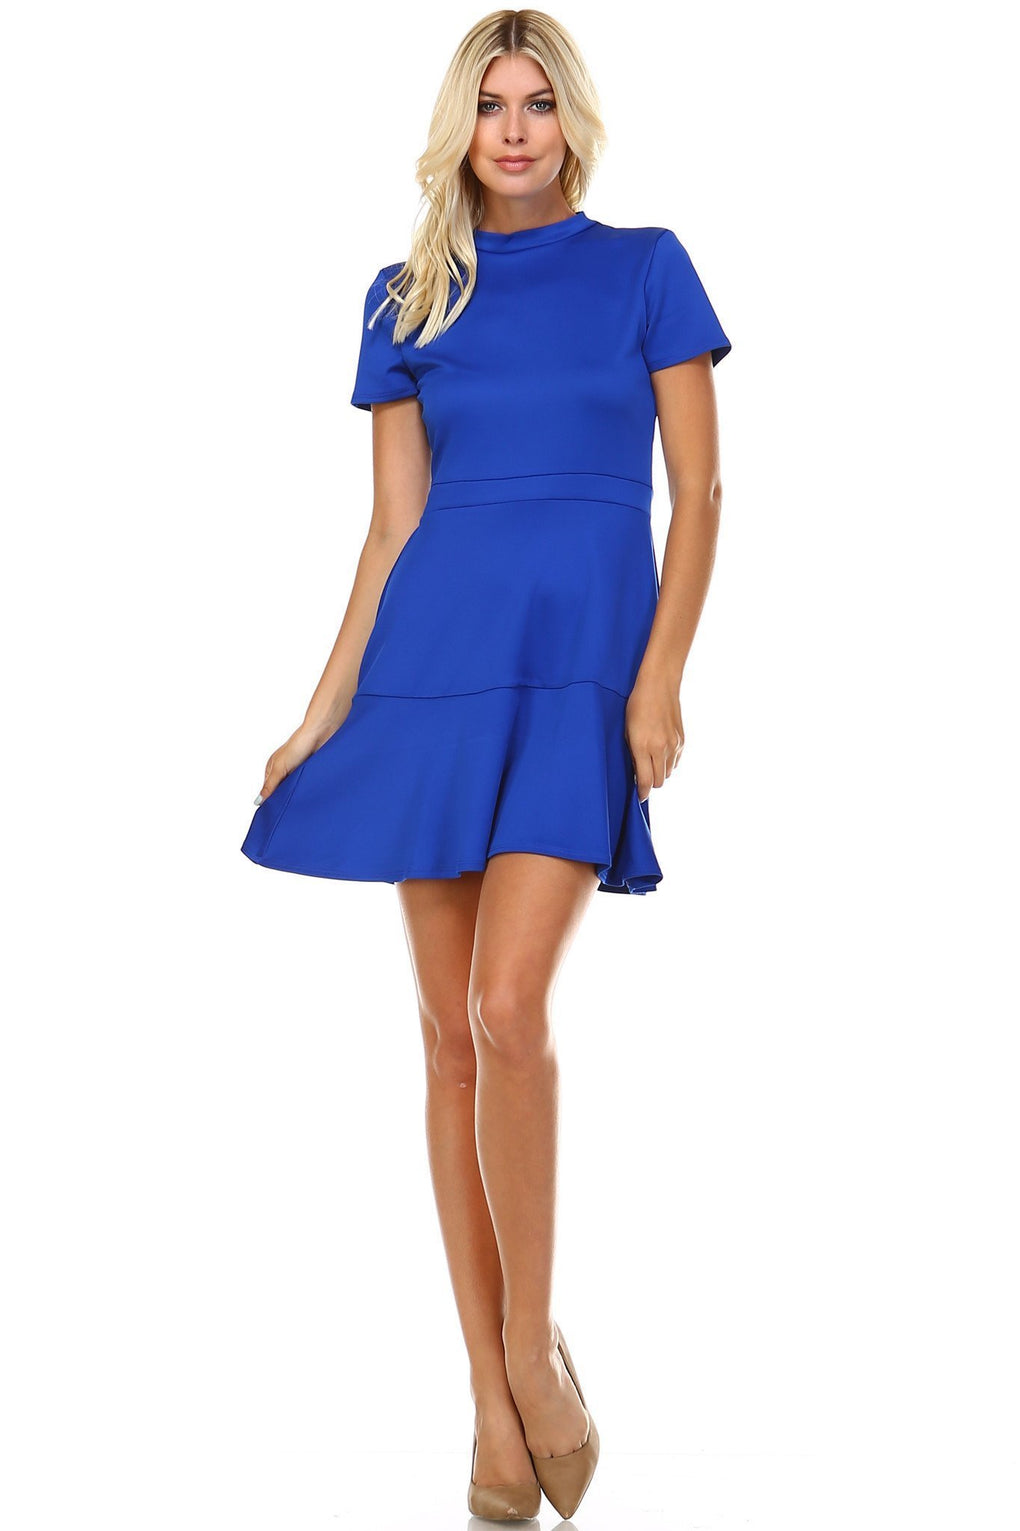 Women's High Neck Short Sleeve Fit and Flare Dress - Danish Fashion & Living Online Store SALE